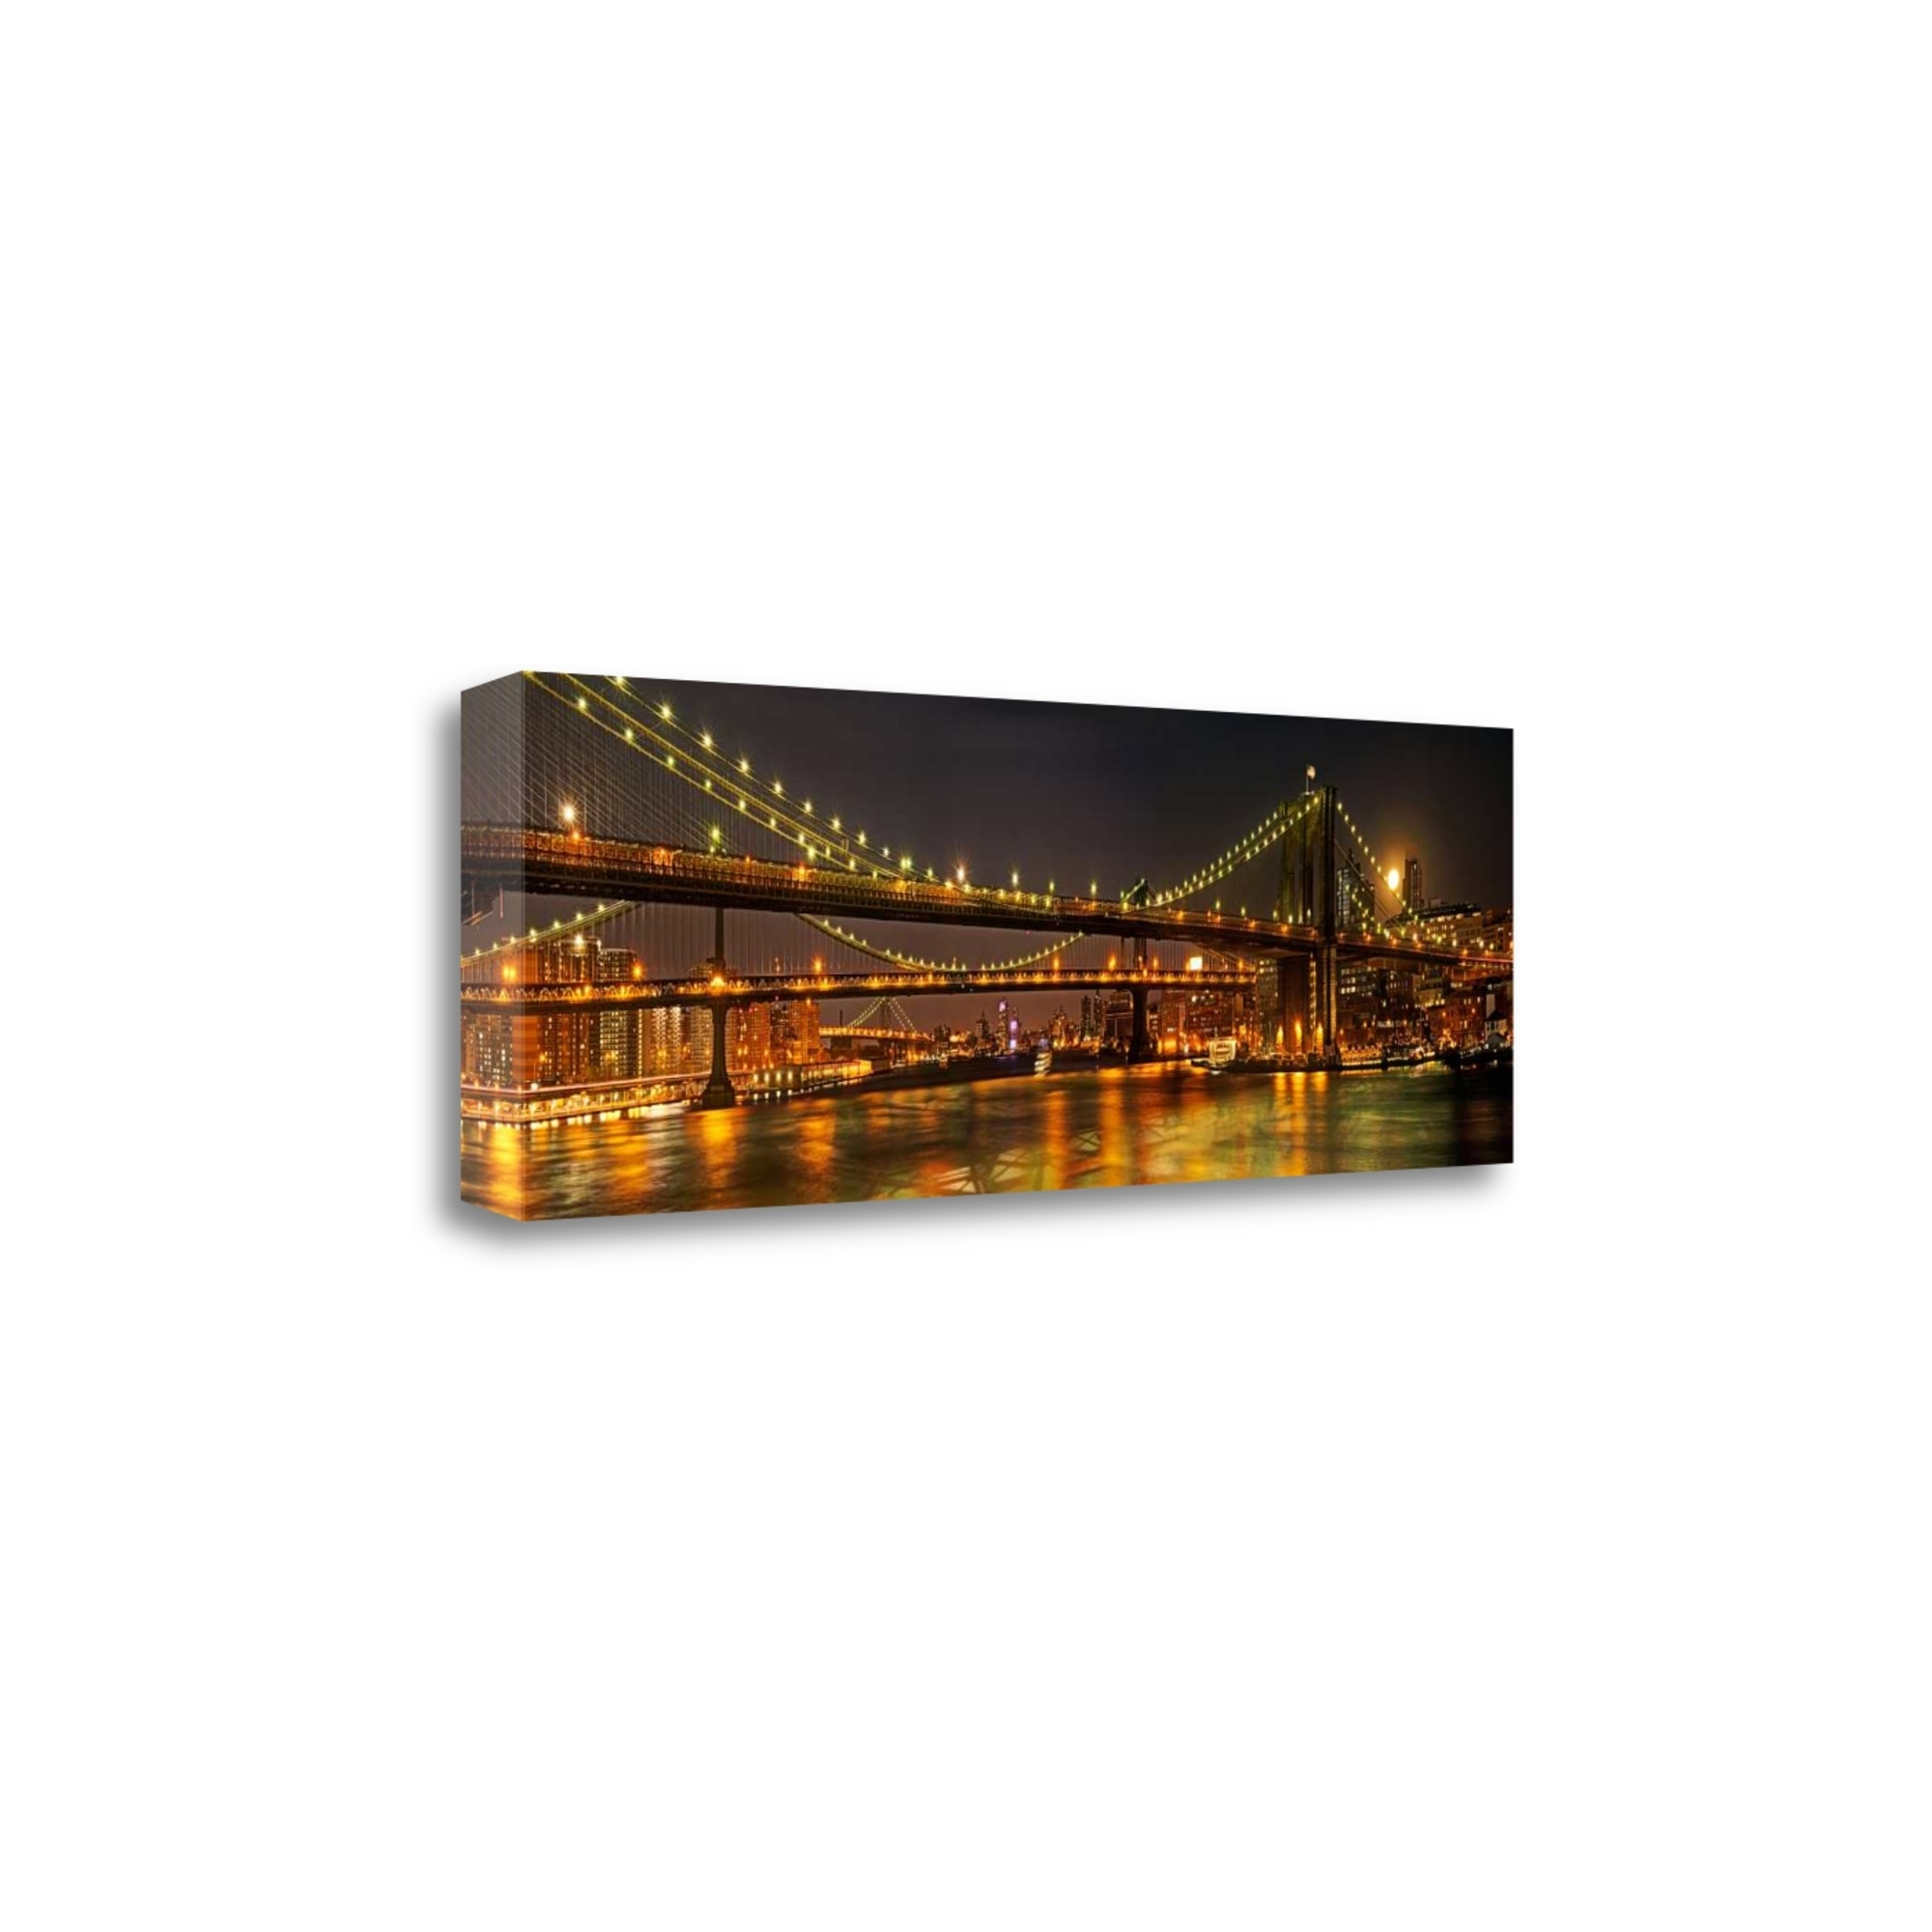 """Three Bridges By Natalie Mikaels, 39\"""" x 13\"""" Fine Art Giclee Print on Gallery Wrap Canvas, Ready to Hang"""